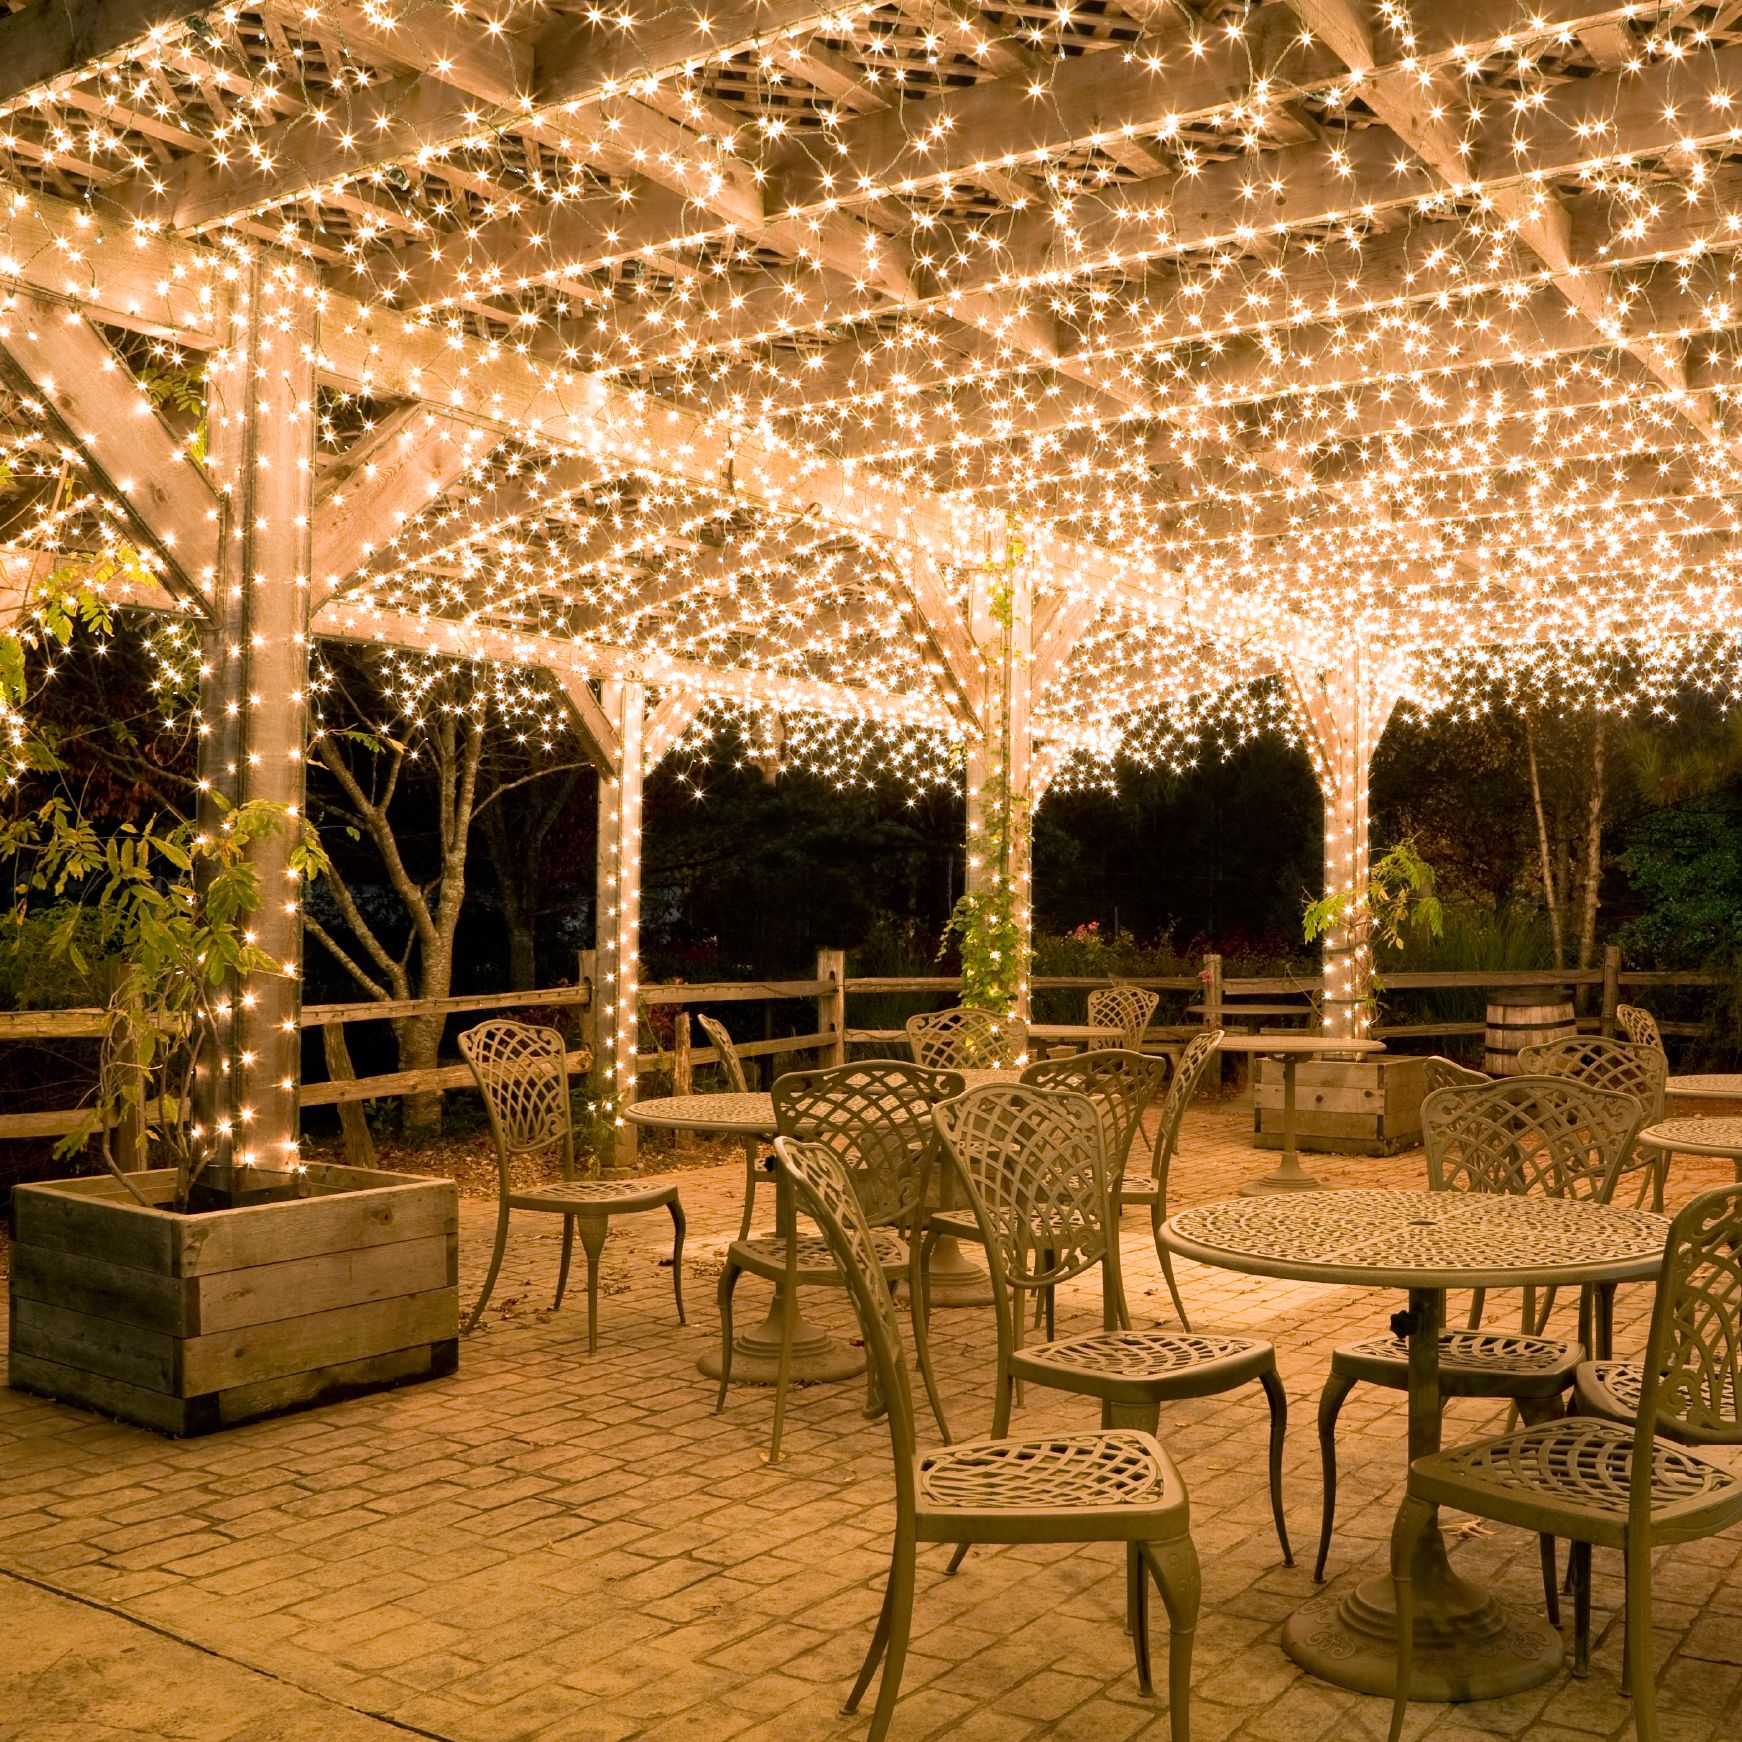 Pin On Outdoor Patio And Party Ideas